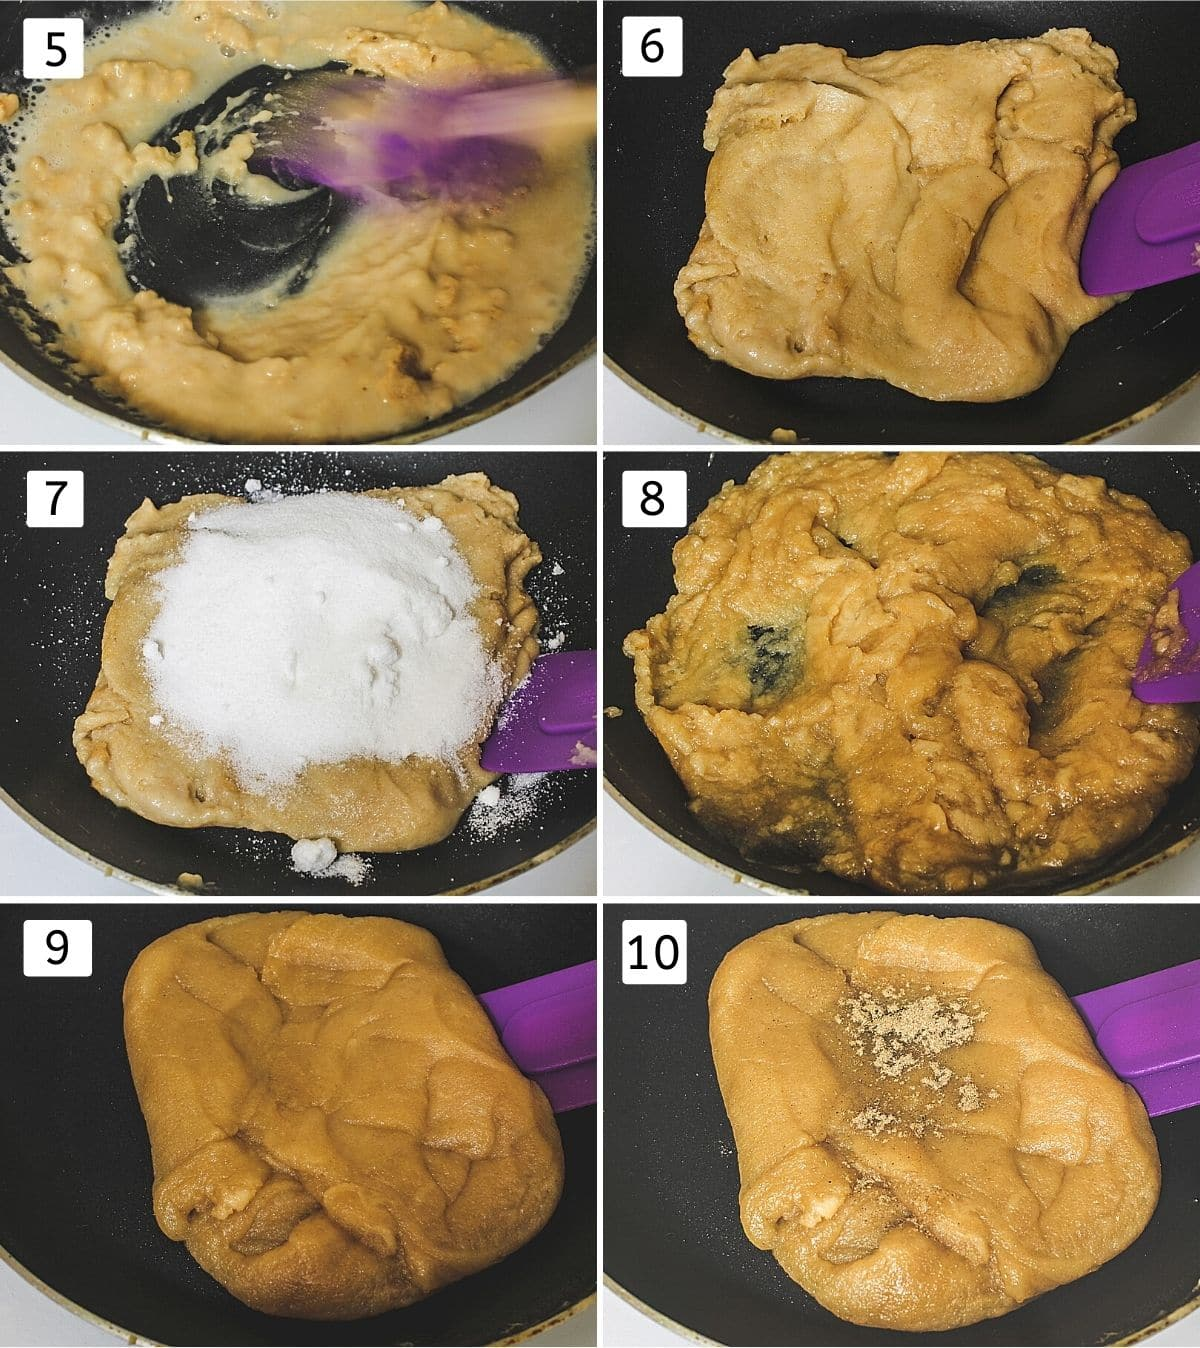 Collage of 6 images showing water added, thick halwa, sugar added, melted, halwa consistency, added cardamom